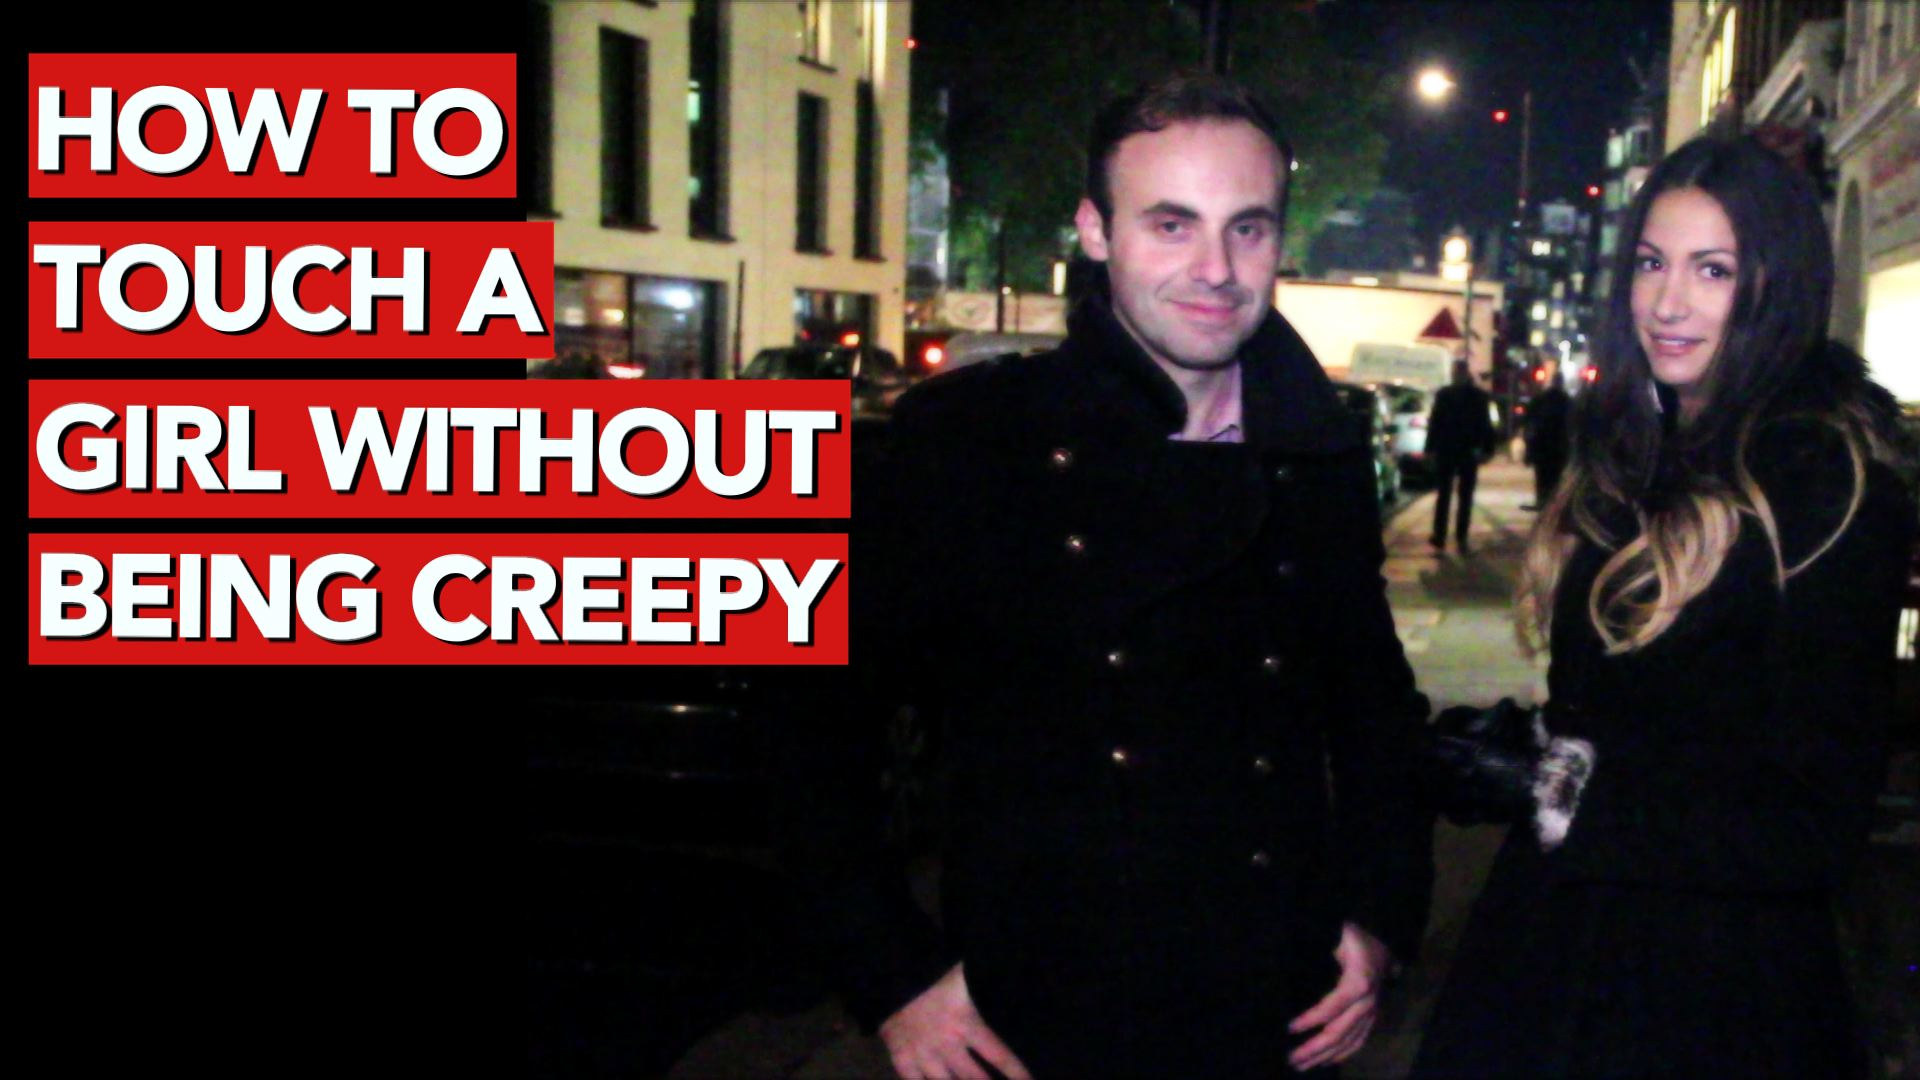 How to Touch a Girl without Being Creepy